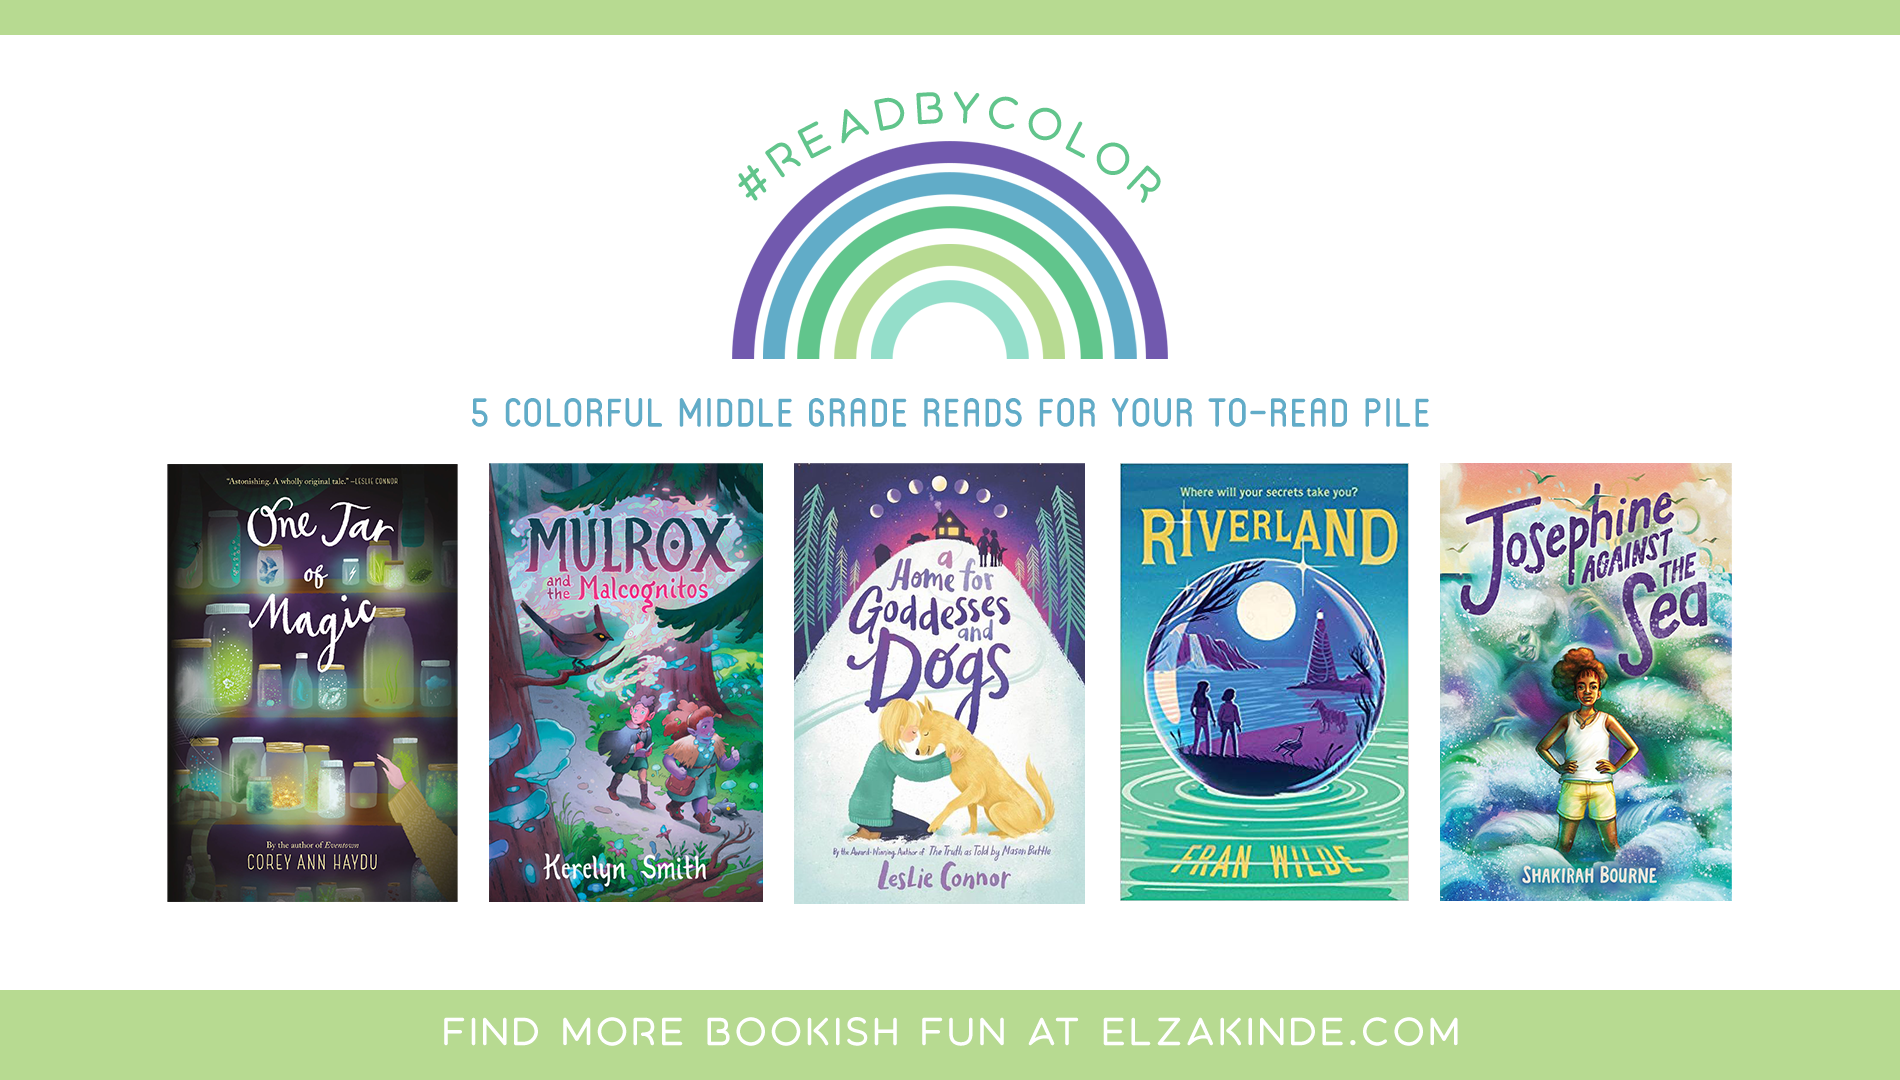 #ReadByColor: 5 Colorful Middle Grade Reads for Your To-Read Pile | features the book covers of ONE JAR OF MAGIC by Corey Ann Haydu; MULROX AND THE MALCOGNITOS by Kerelyn Smith; A HOME FOR GODDESSES AND DOGS by Leslie Connor; RIVERLAND by Fran Wilde; and JOSEPHINE AGAINST THE SEA by Shakirah Bourne